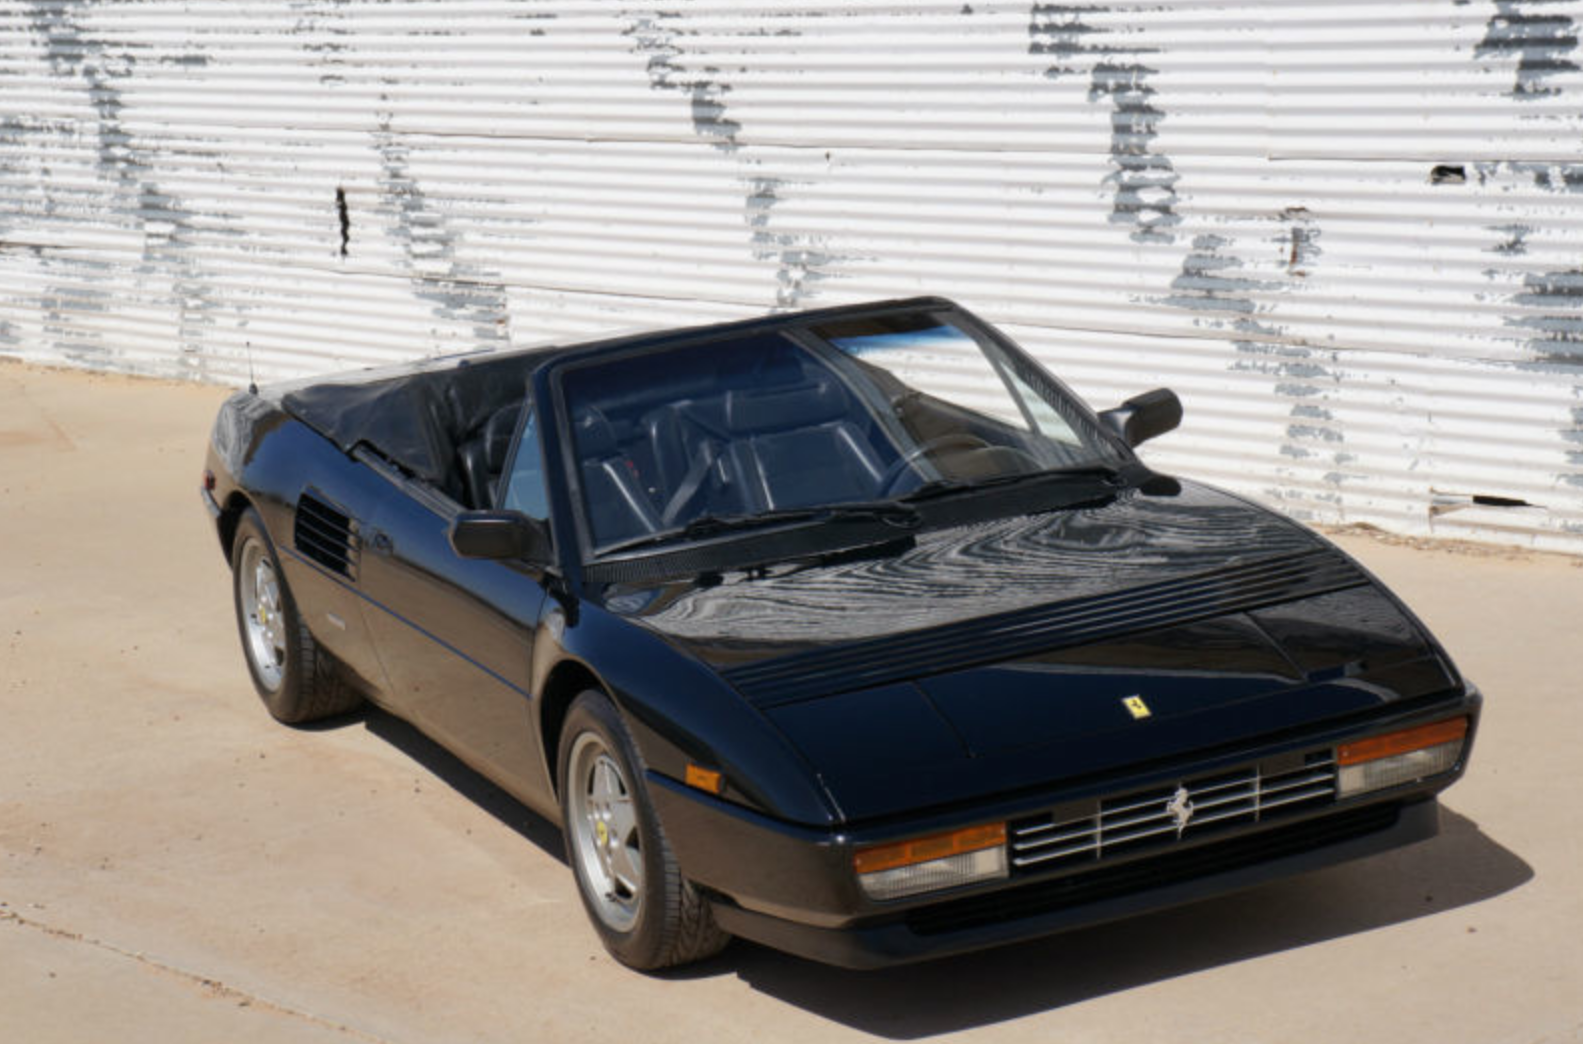 1992 ferrari mondial t cabriolet classic italian cars for sale. Black Bedroom Furniture Sets. Home Design Ideas